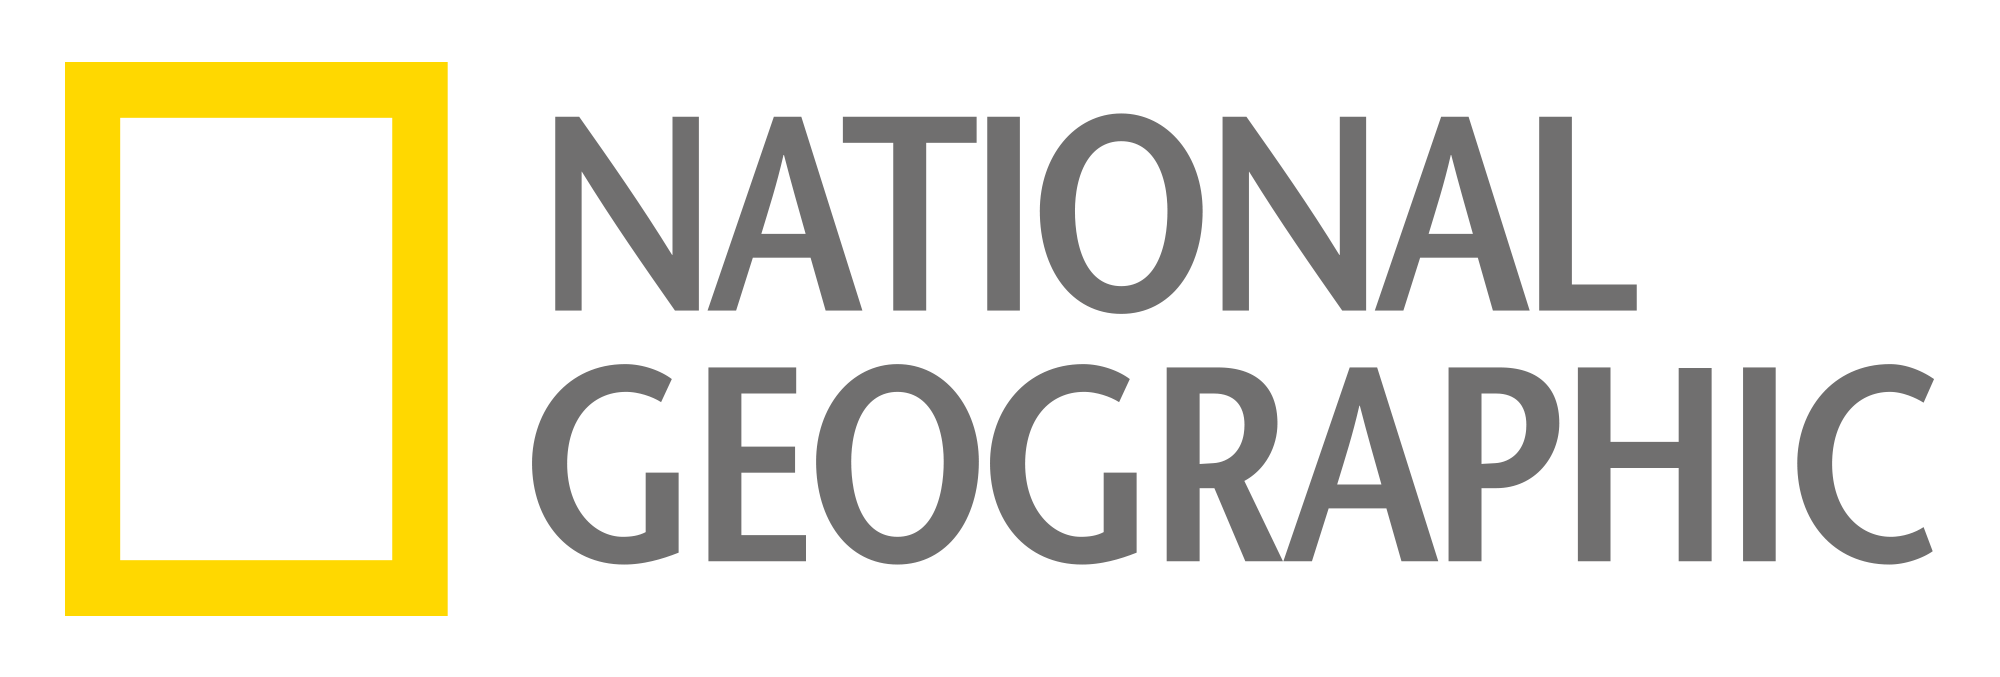 NG_LOGO_gray.png - National Geographic Channel Logo PNG